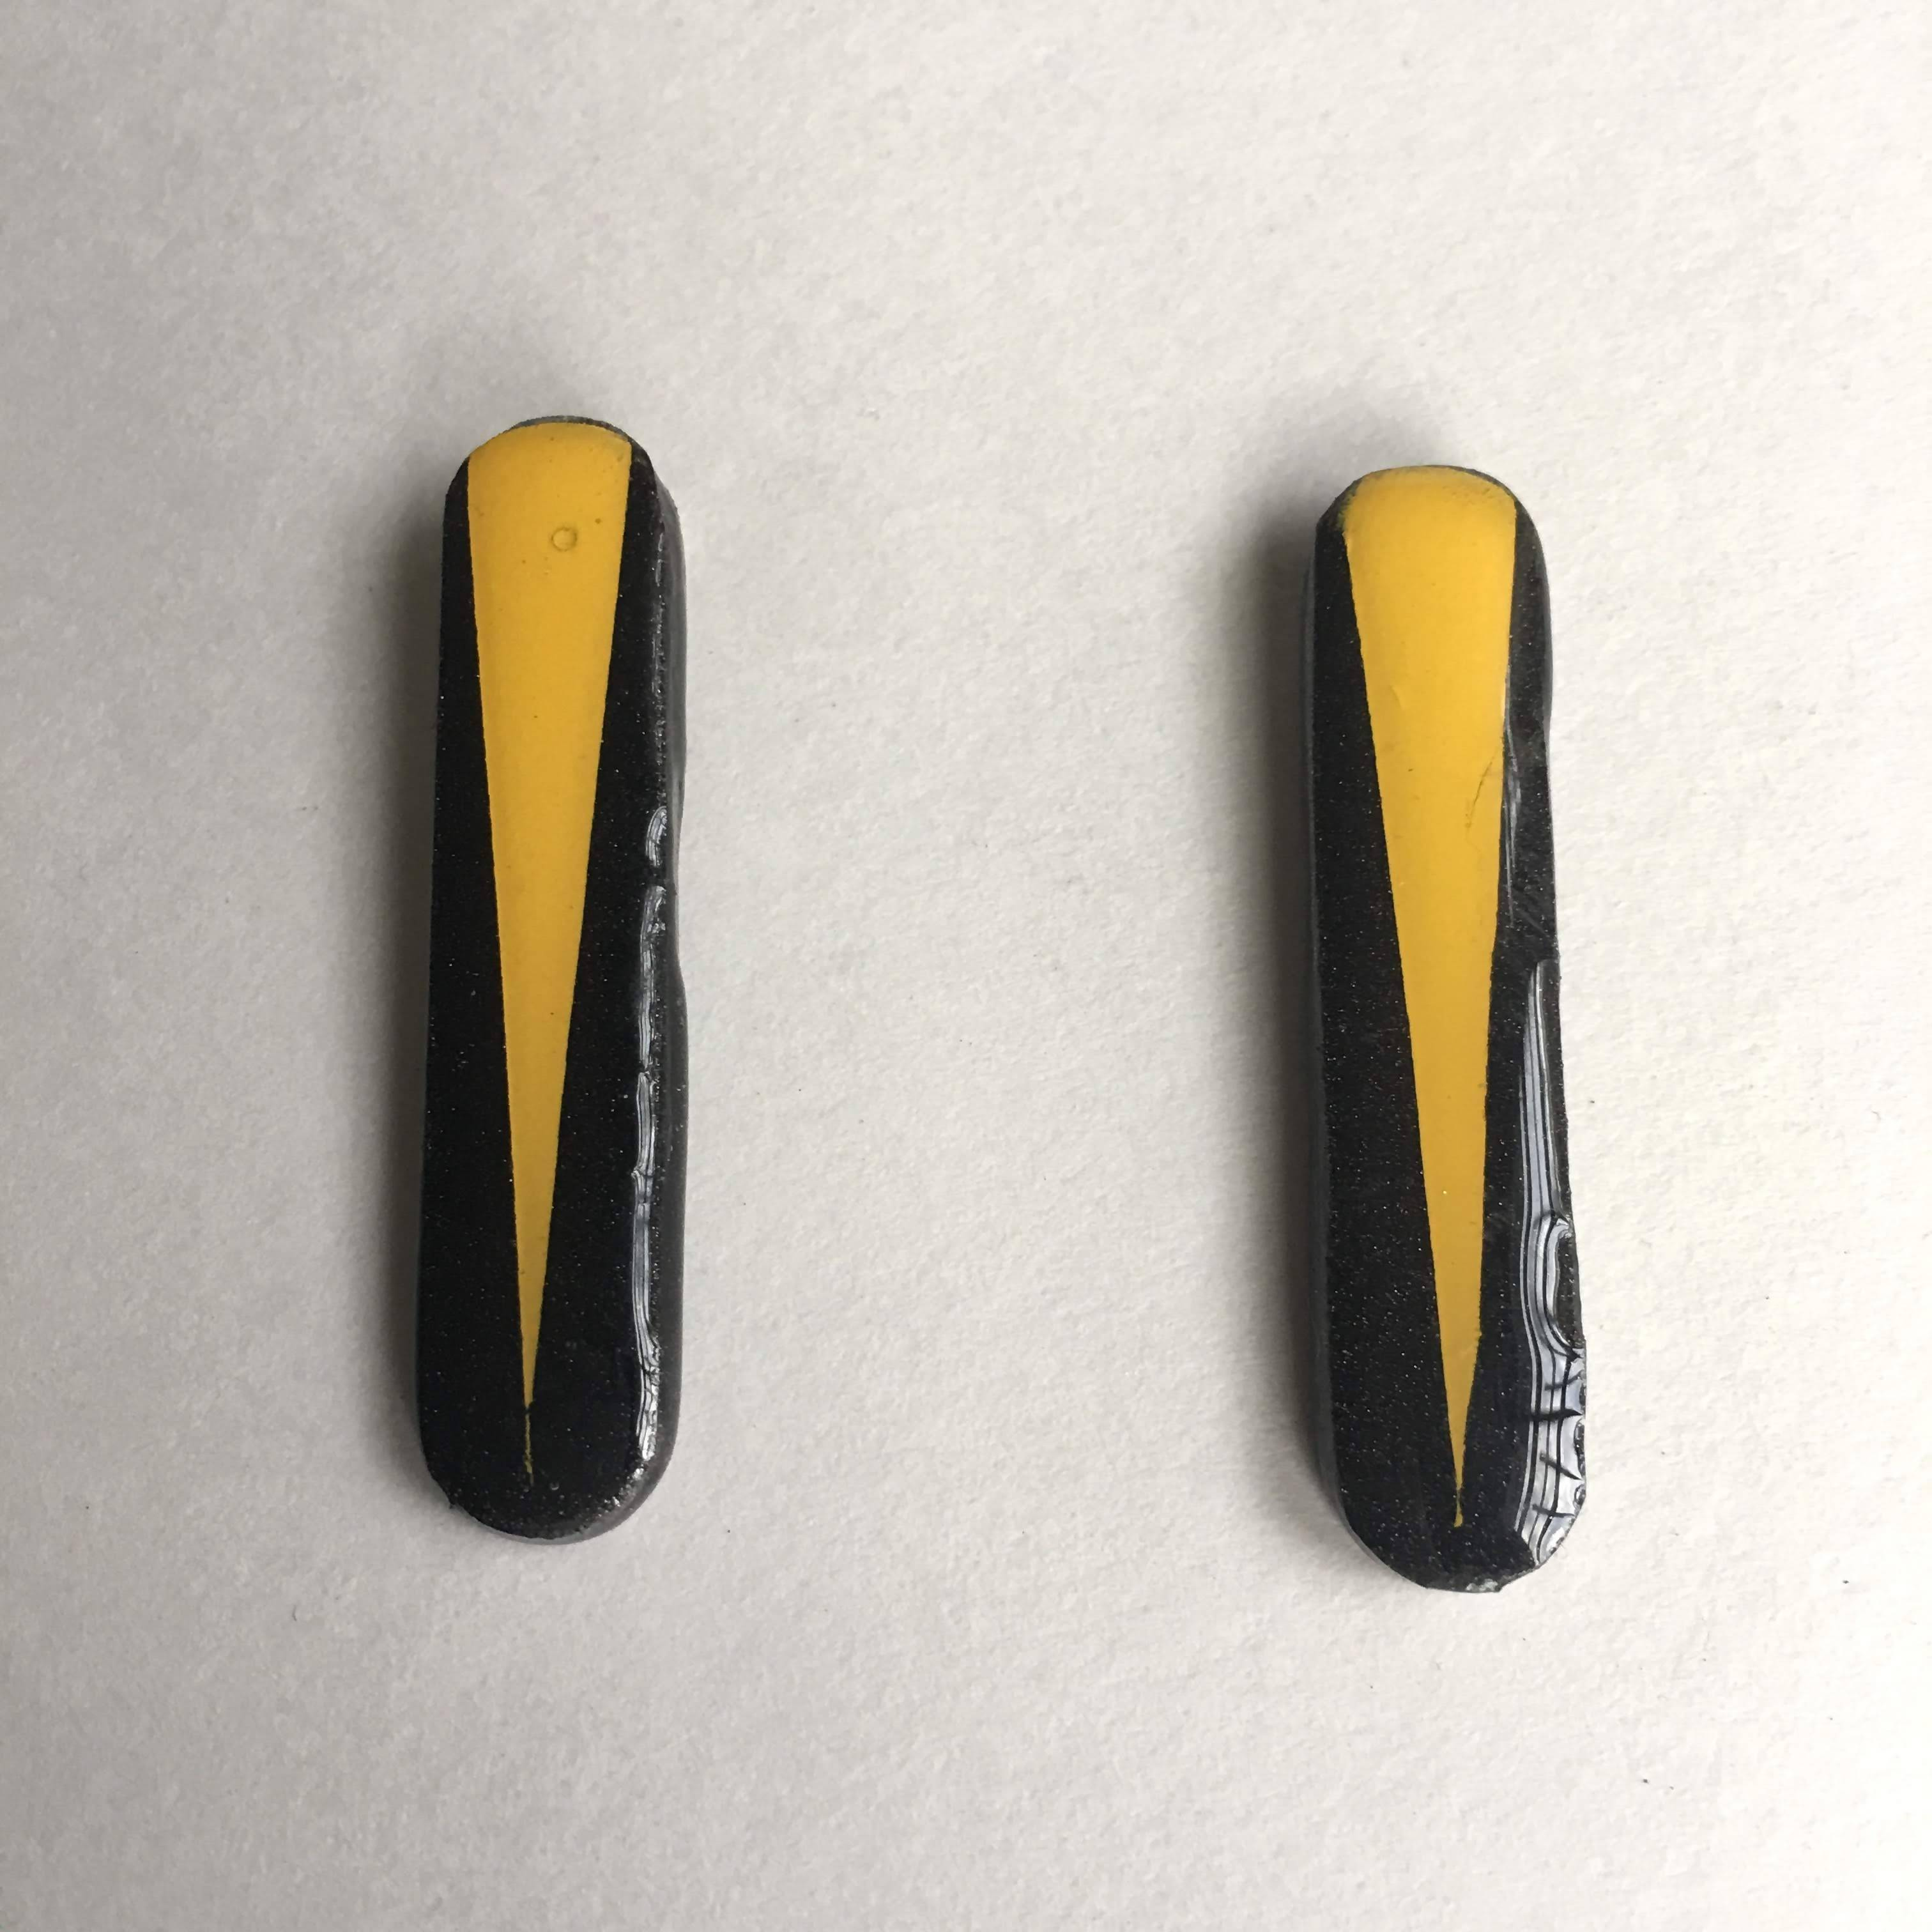 long rounded rectnagle black and yellow post earrings